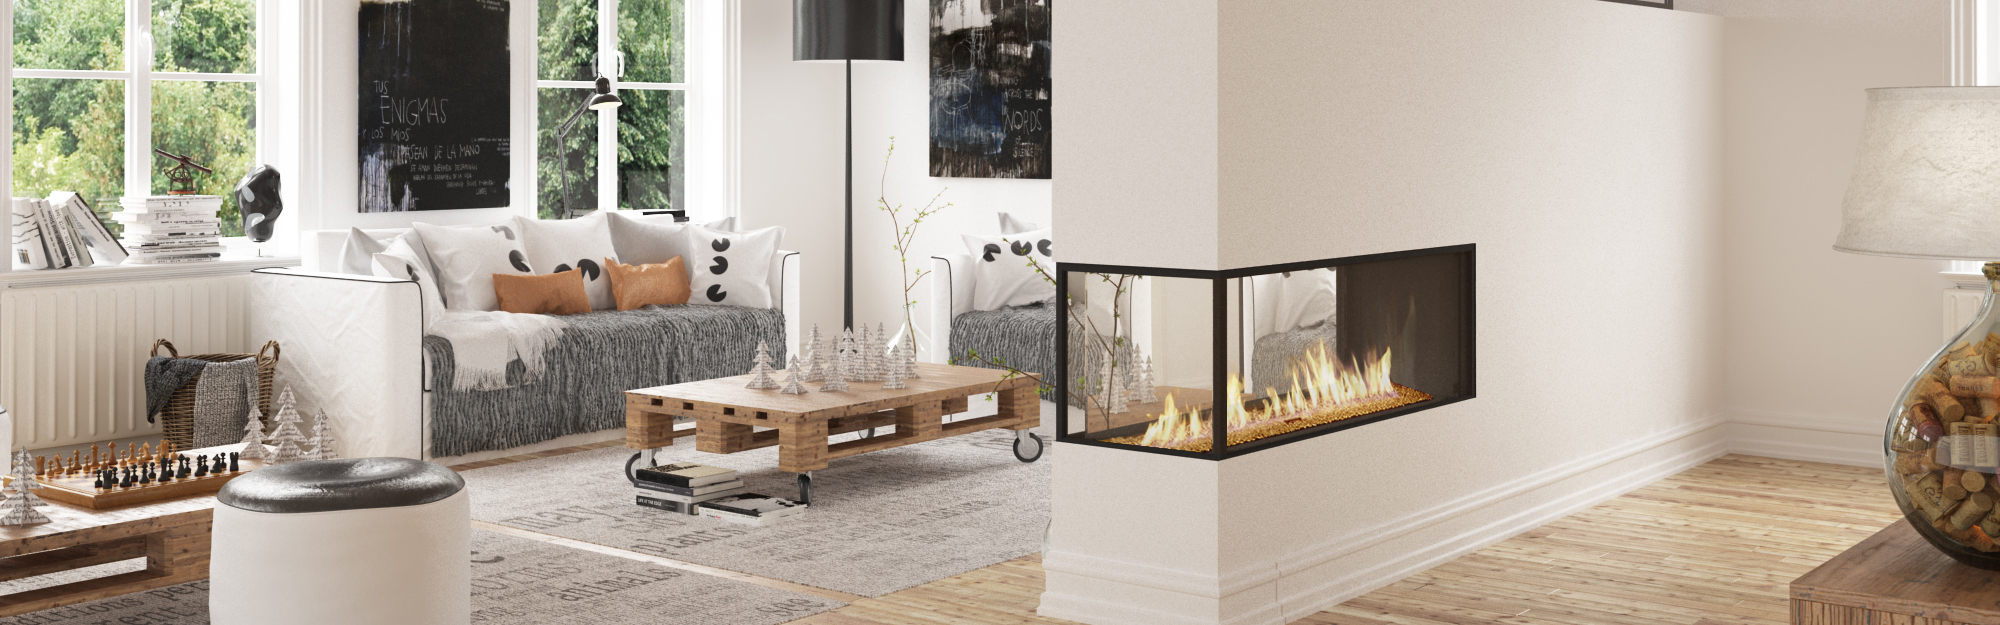 Modern Peninsula Fireplaces